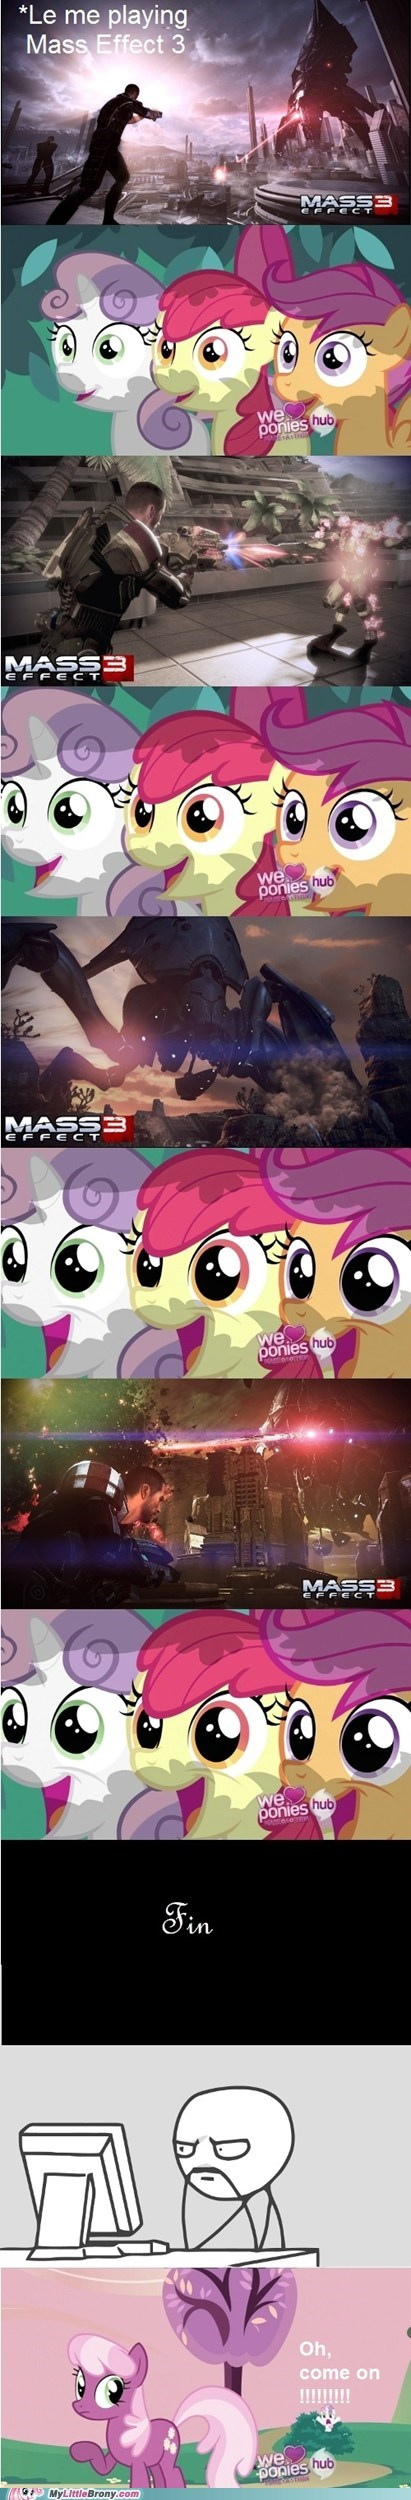 Mass Effect 3 reaction